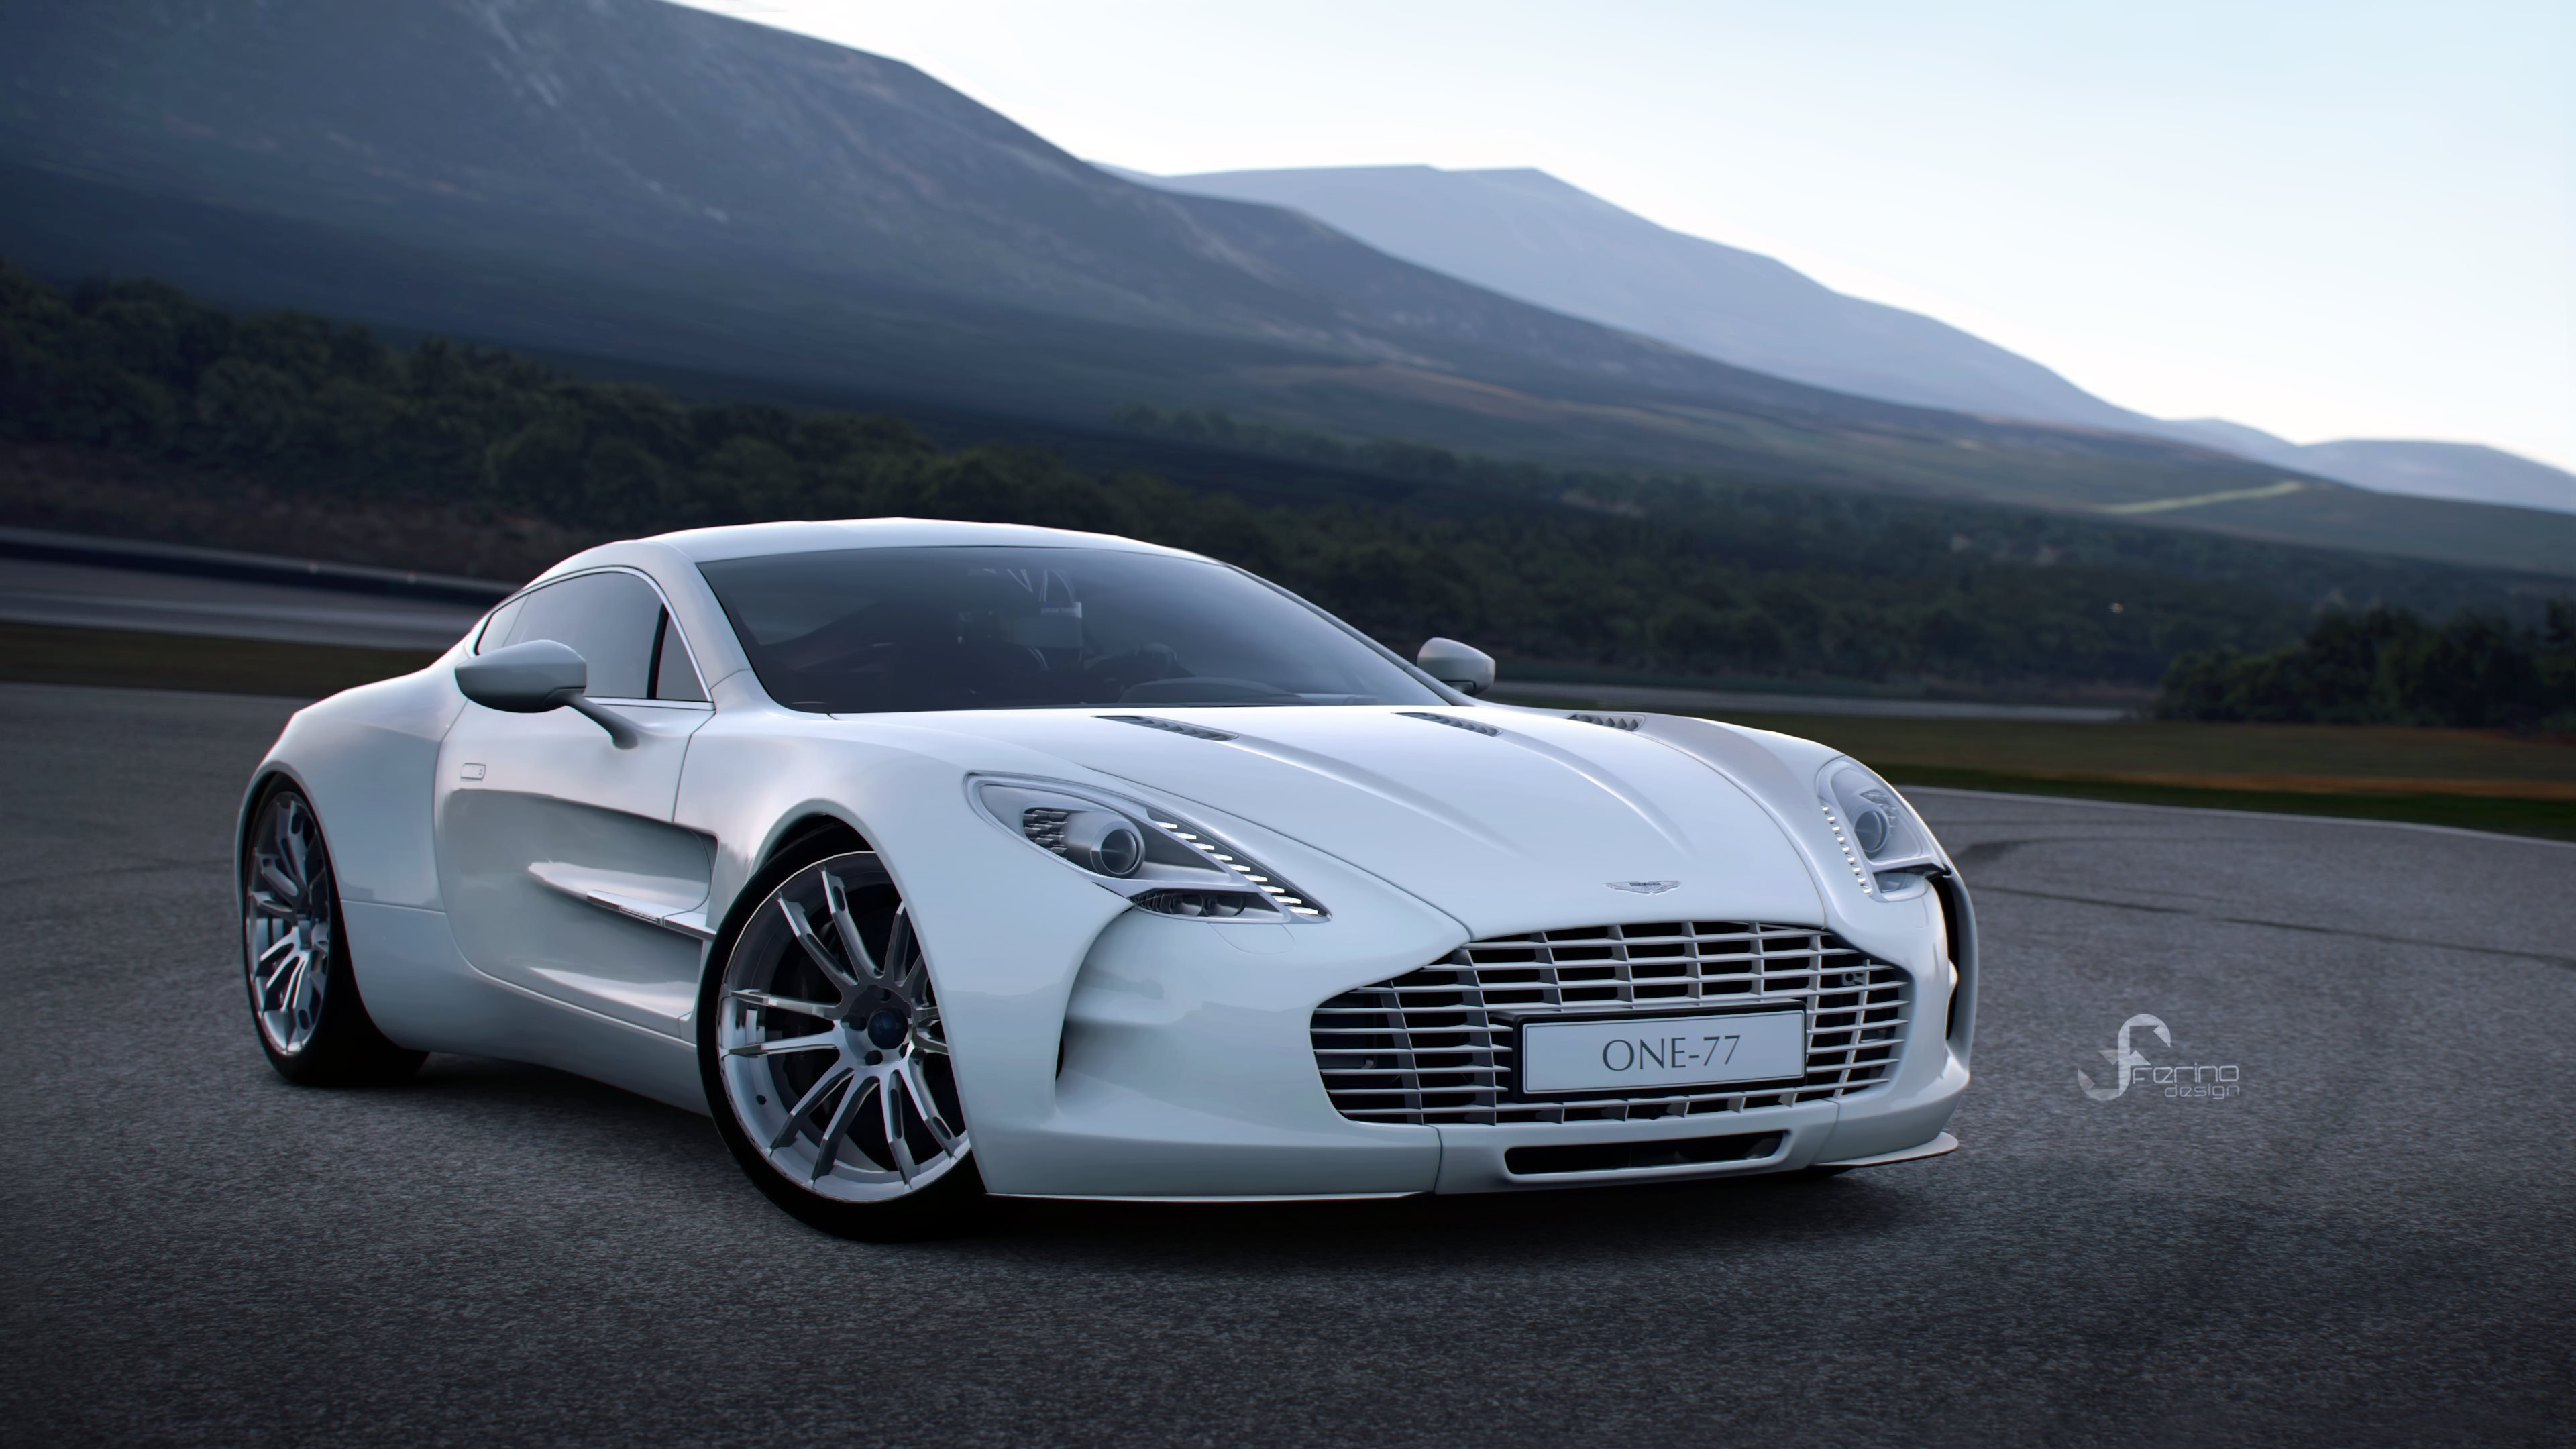 Latest Aston Martin One 77 Wallpapers Images Photos Pictures Free Download